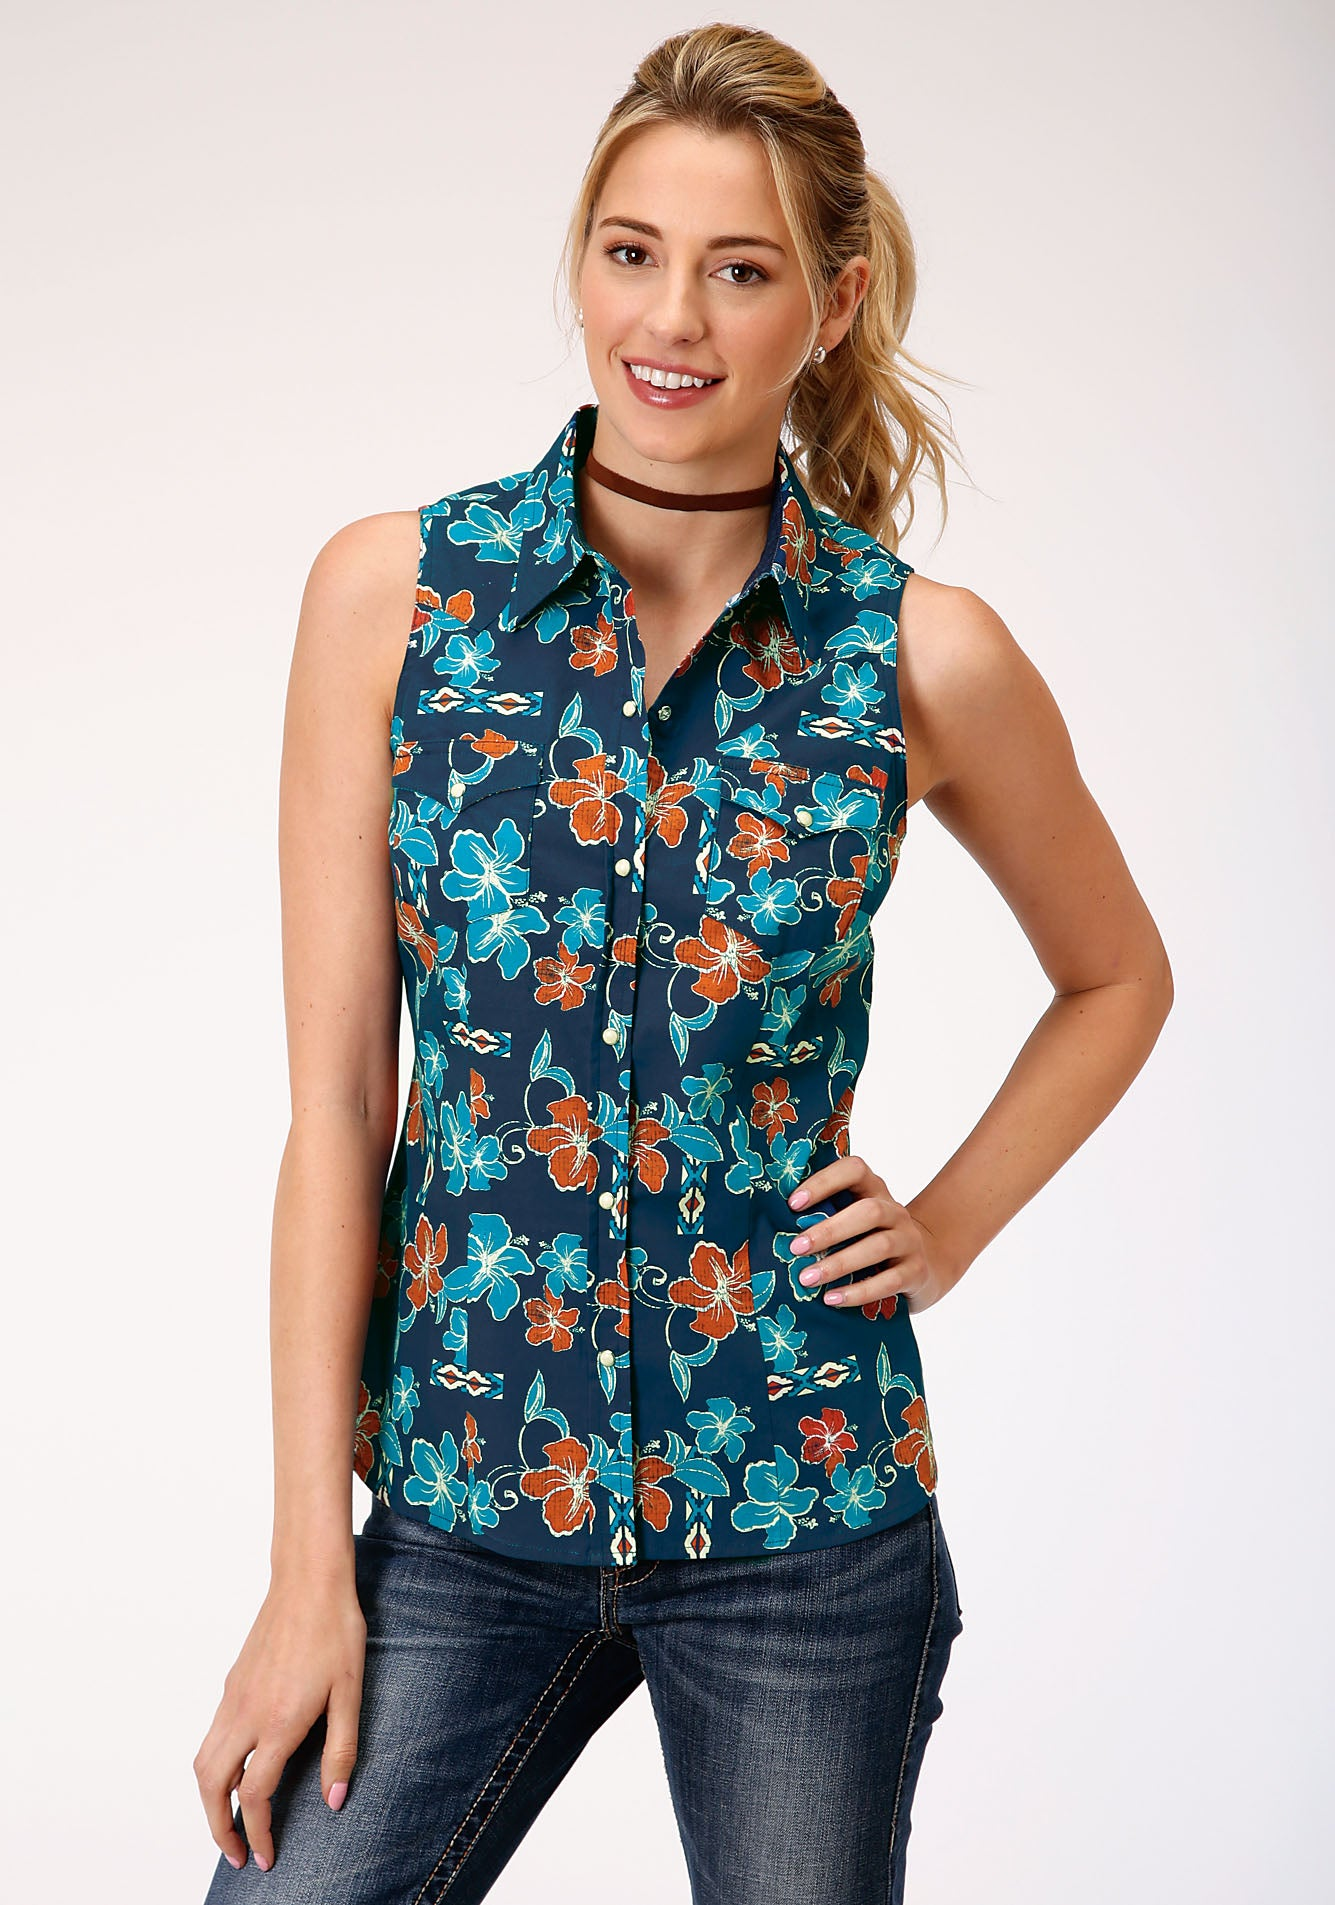 ROPER WOMENS BLUE 00081 NEW TROPTICAL PRINT WEST MADE COLLECTION SLEEVELESS